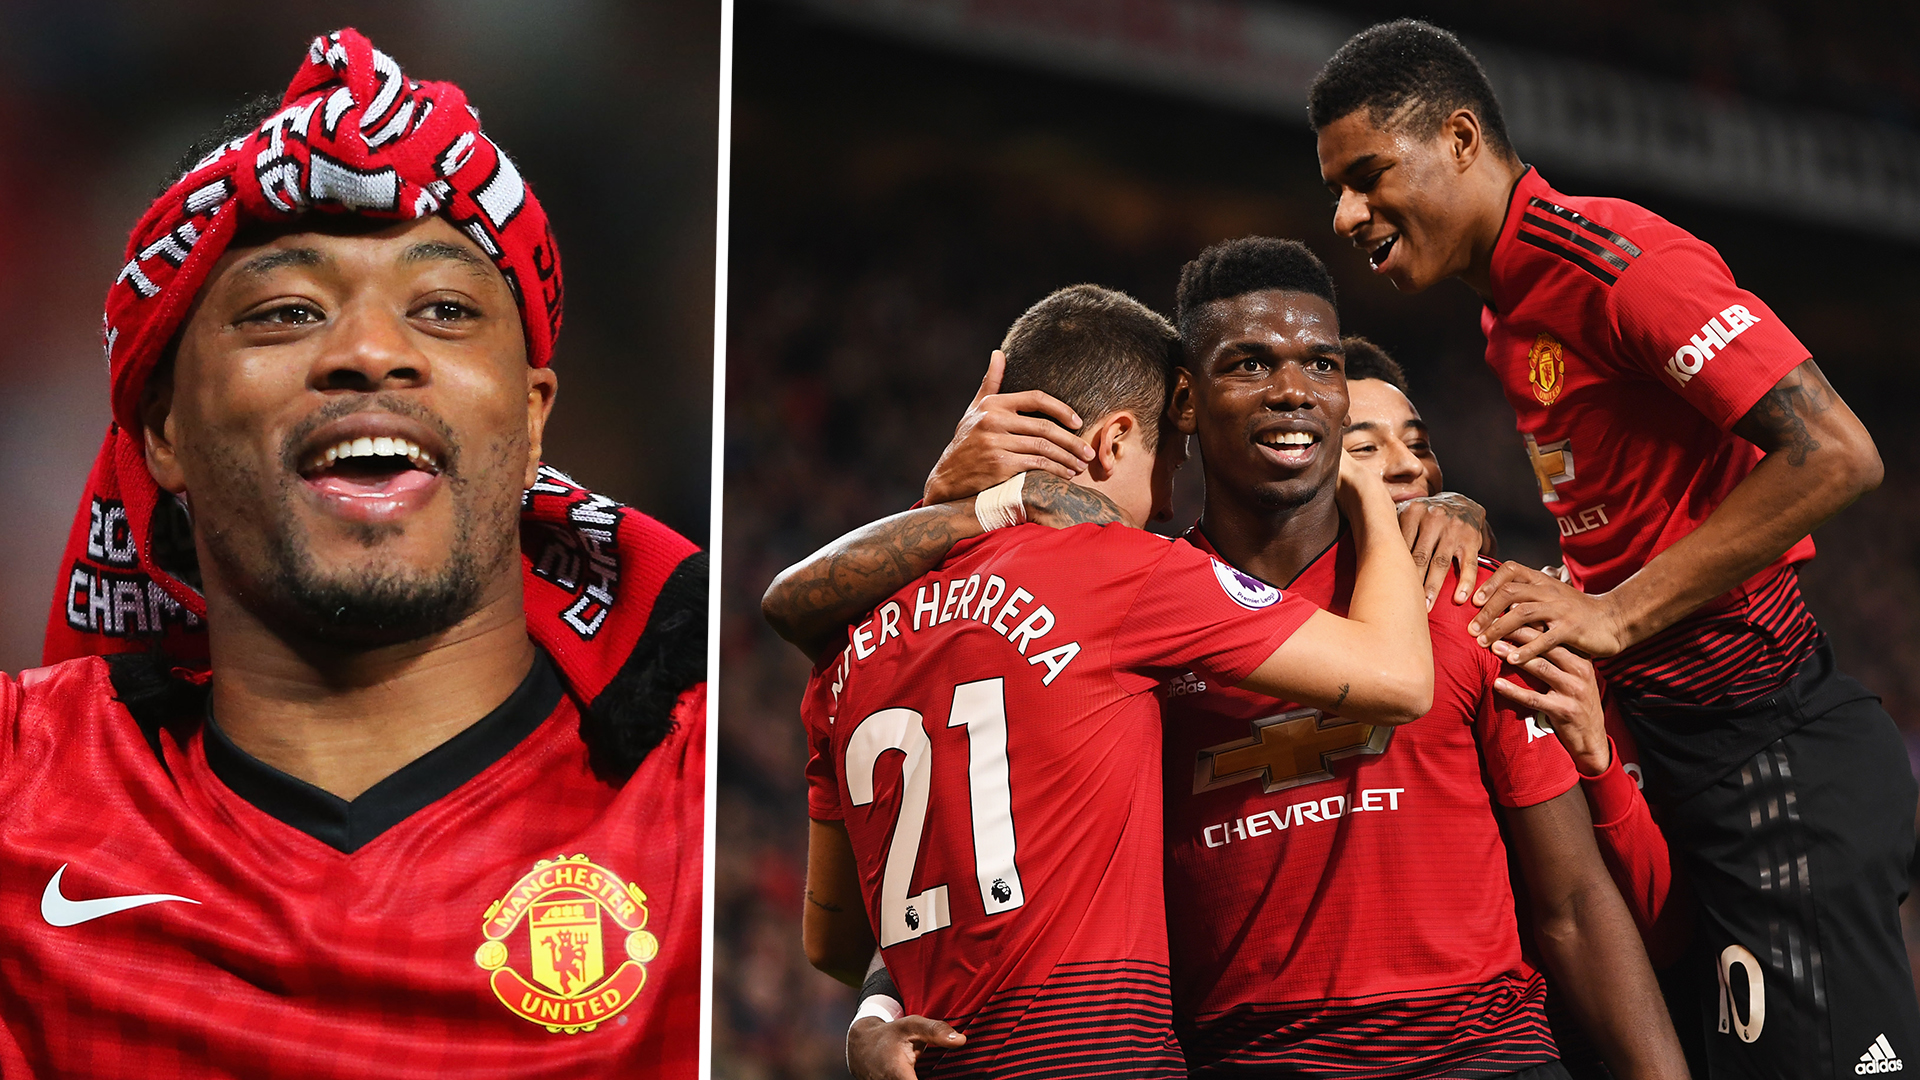 Patrice Evra Man Utd Celebrating